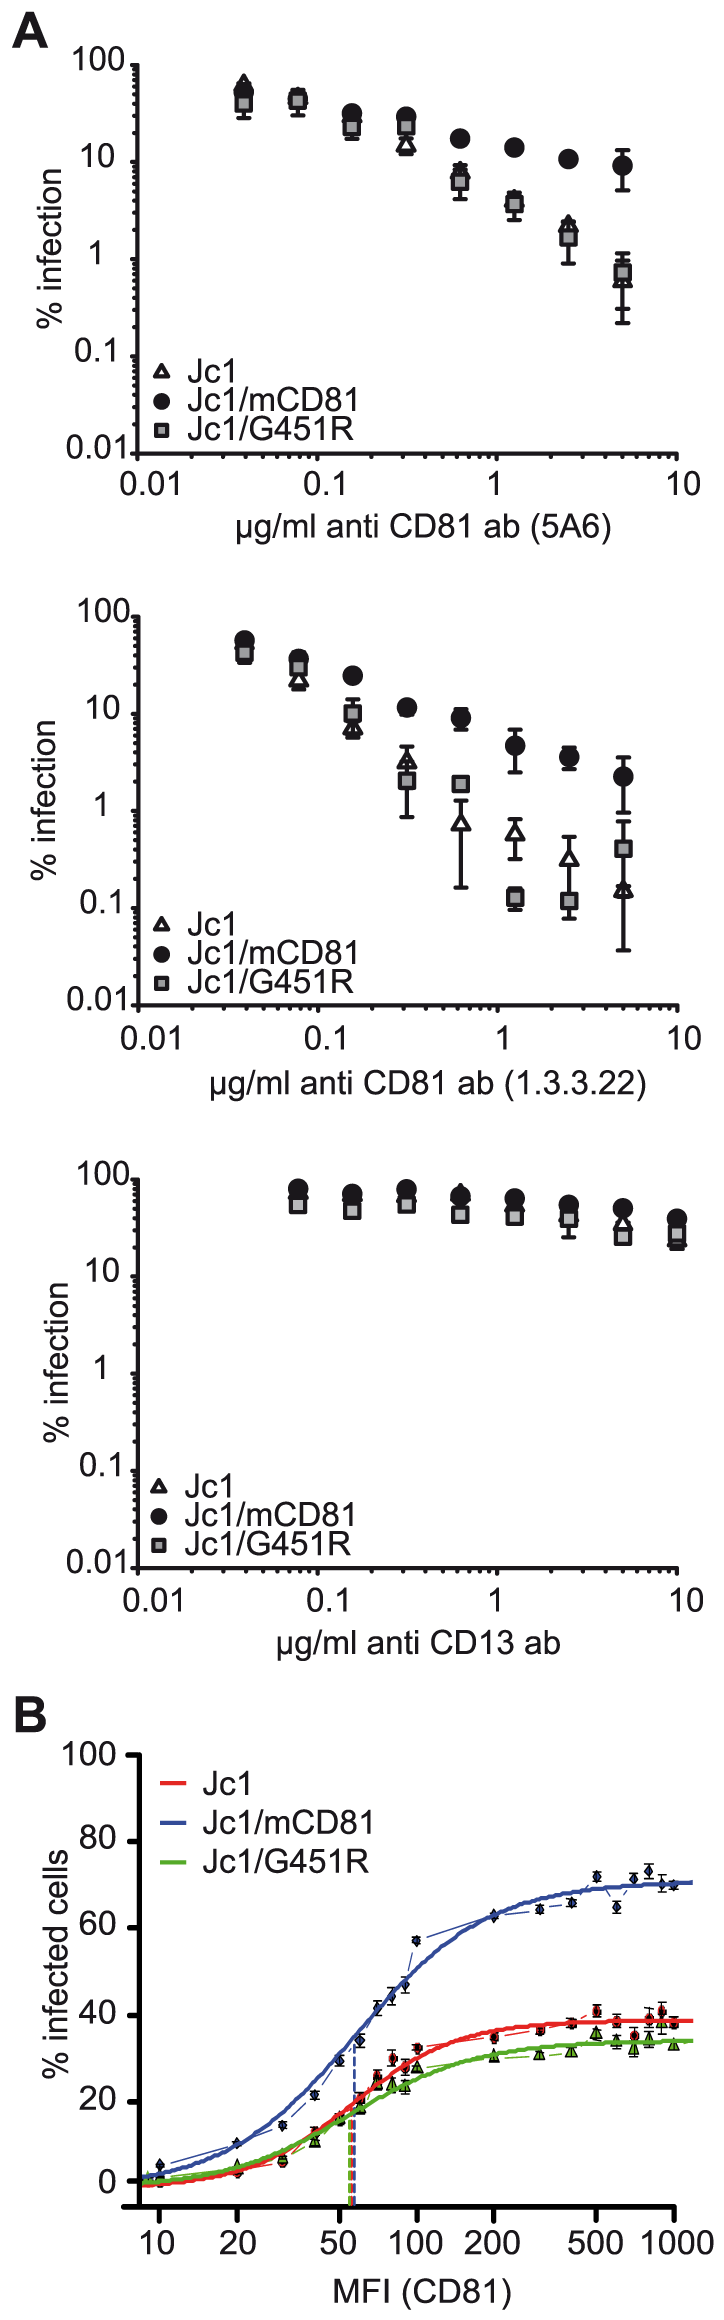 Efficiency of human CD81 usage by Jc1 and Jc1 variants.